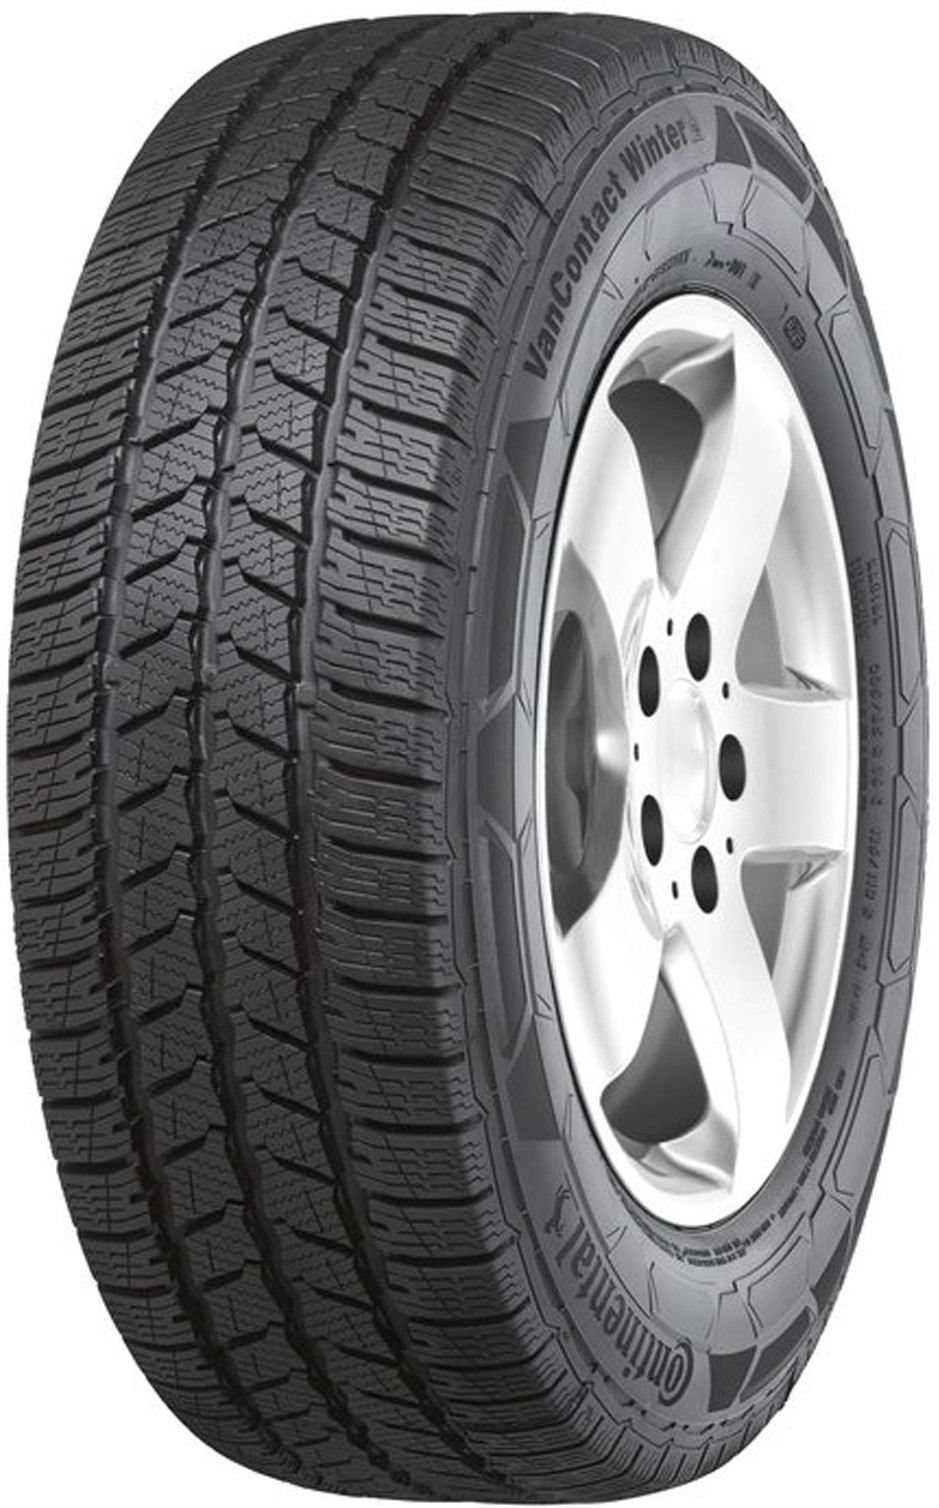 Автошина CONTINENTAL VANCONTACT WINTER 195/70 R15 104/102R Зима